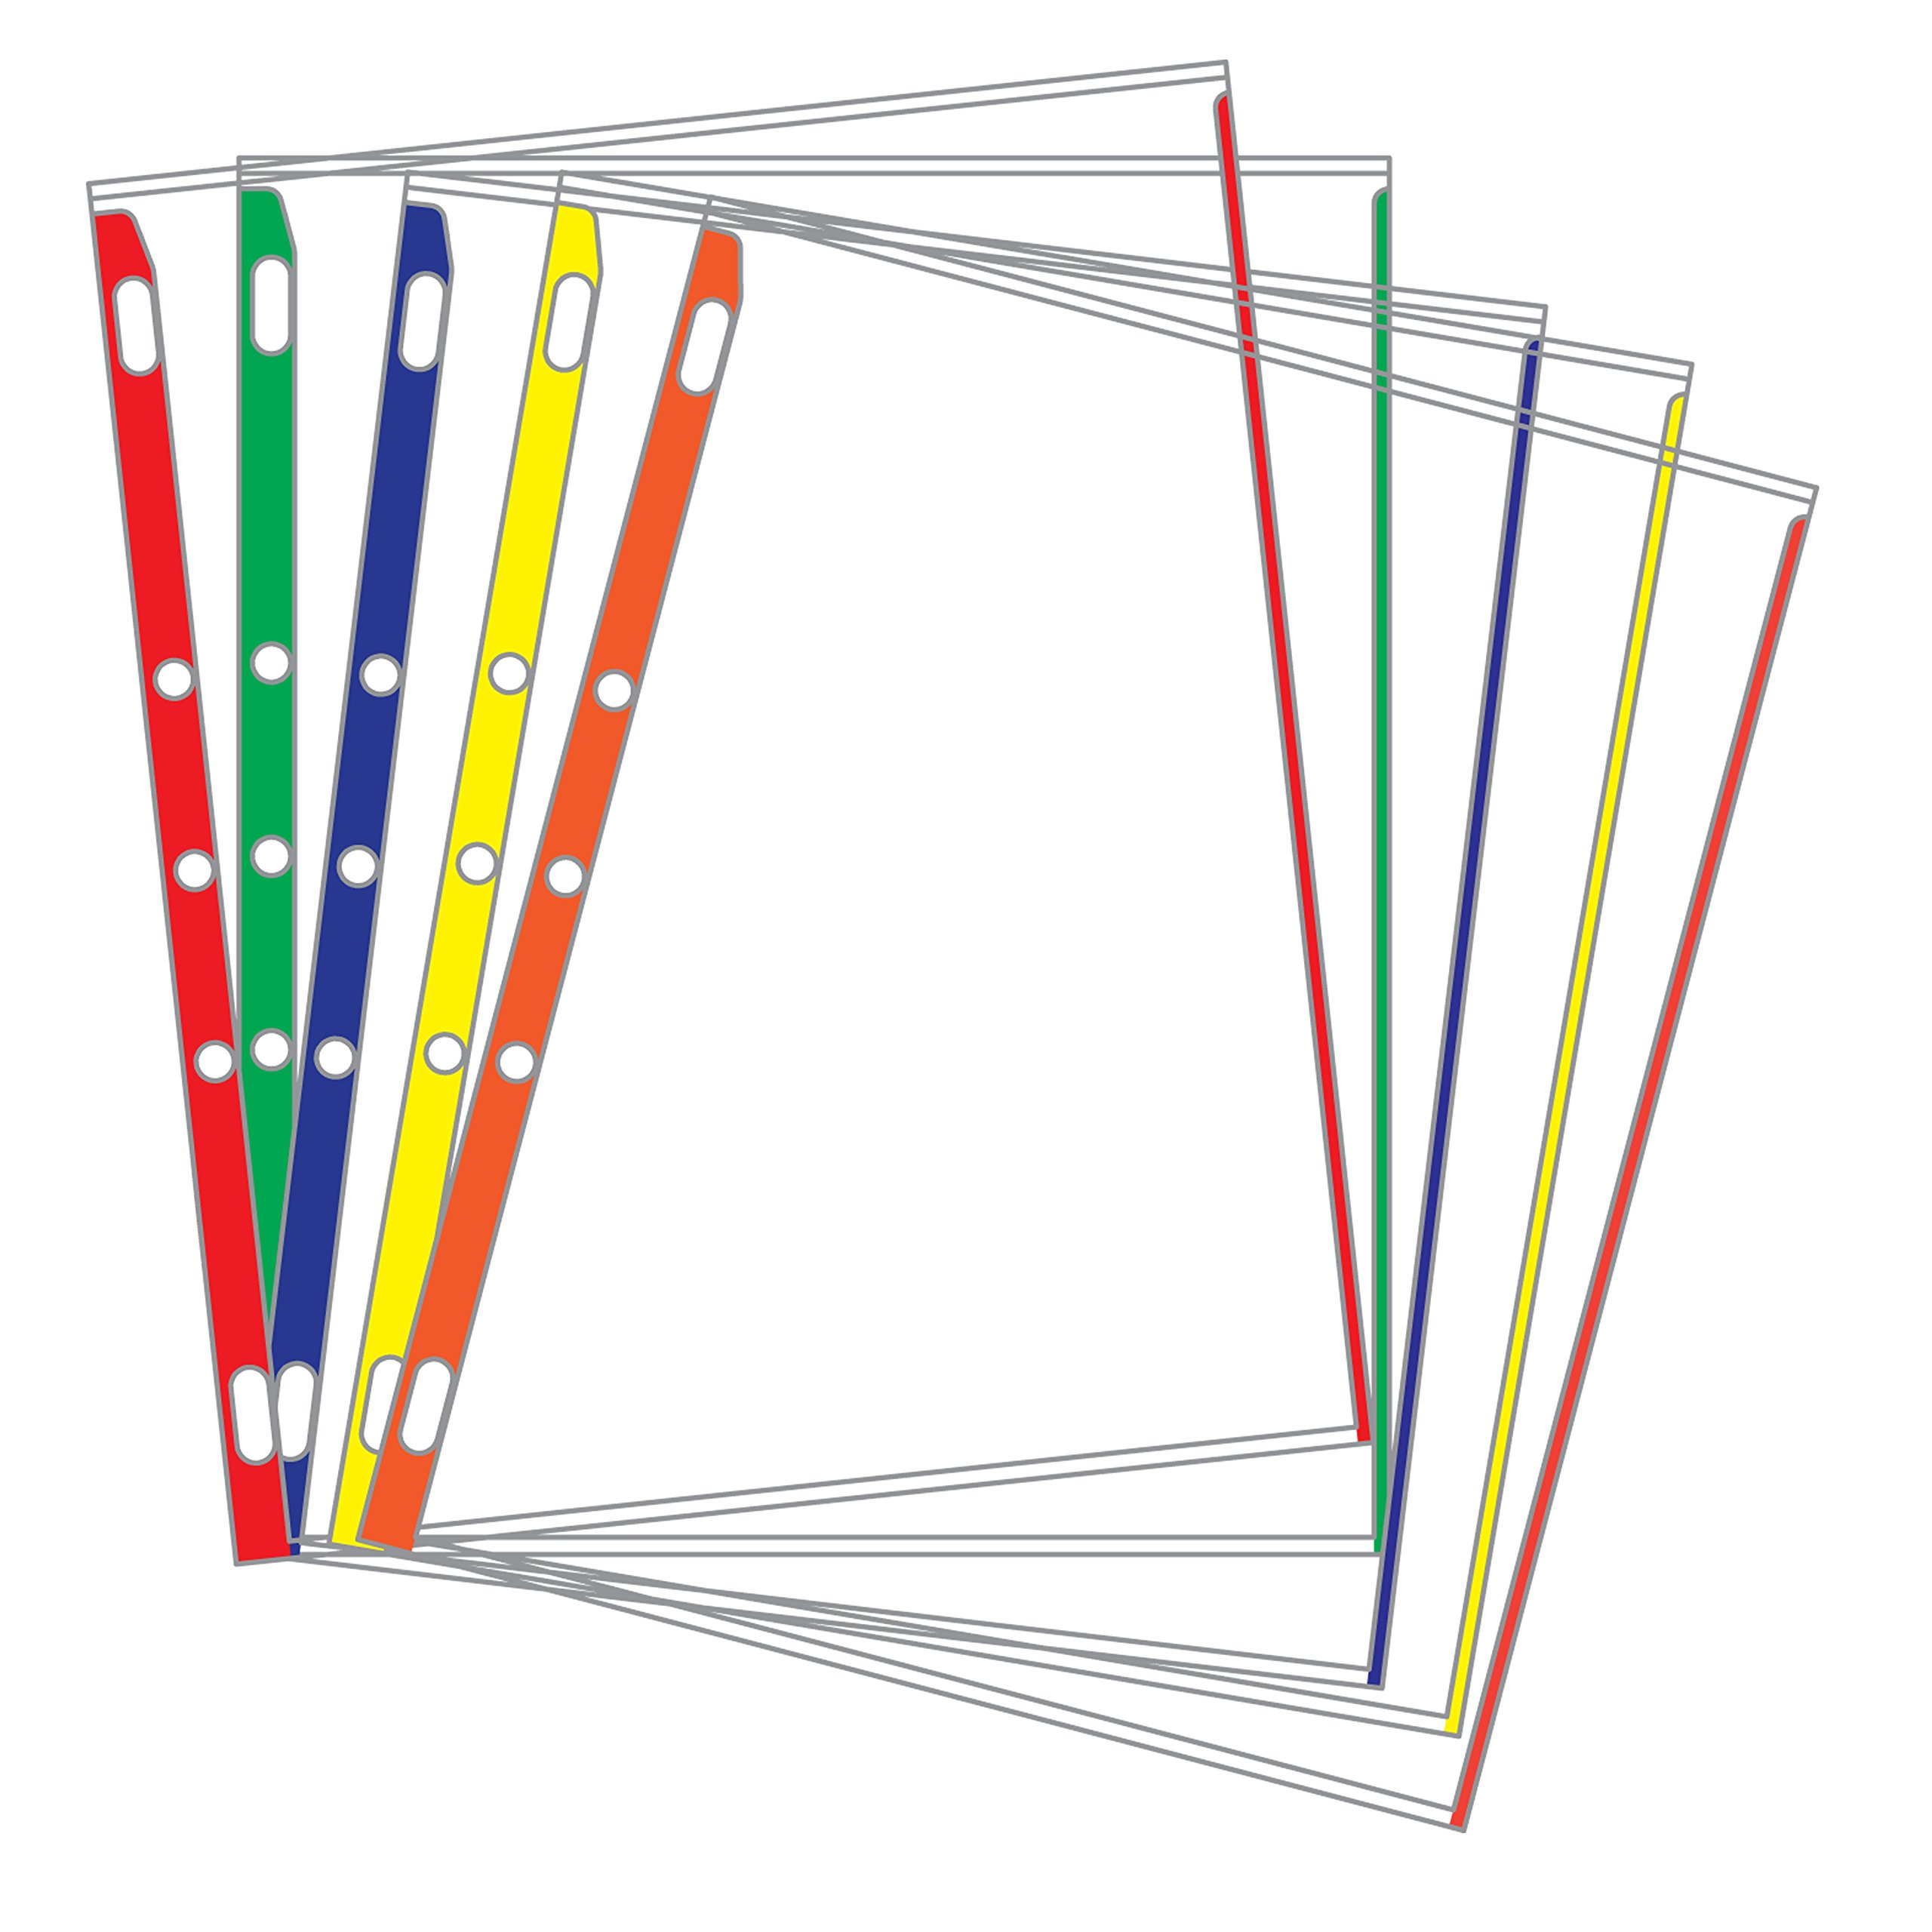 Sheet Protectors Color-Coded Edges 8.5 X 11 Pack of 100 (Assorted) by EnvyPak (Image #1)